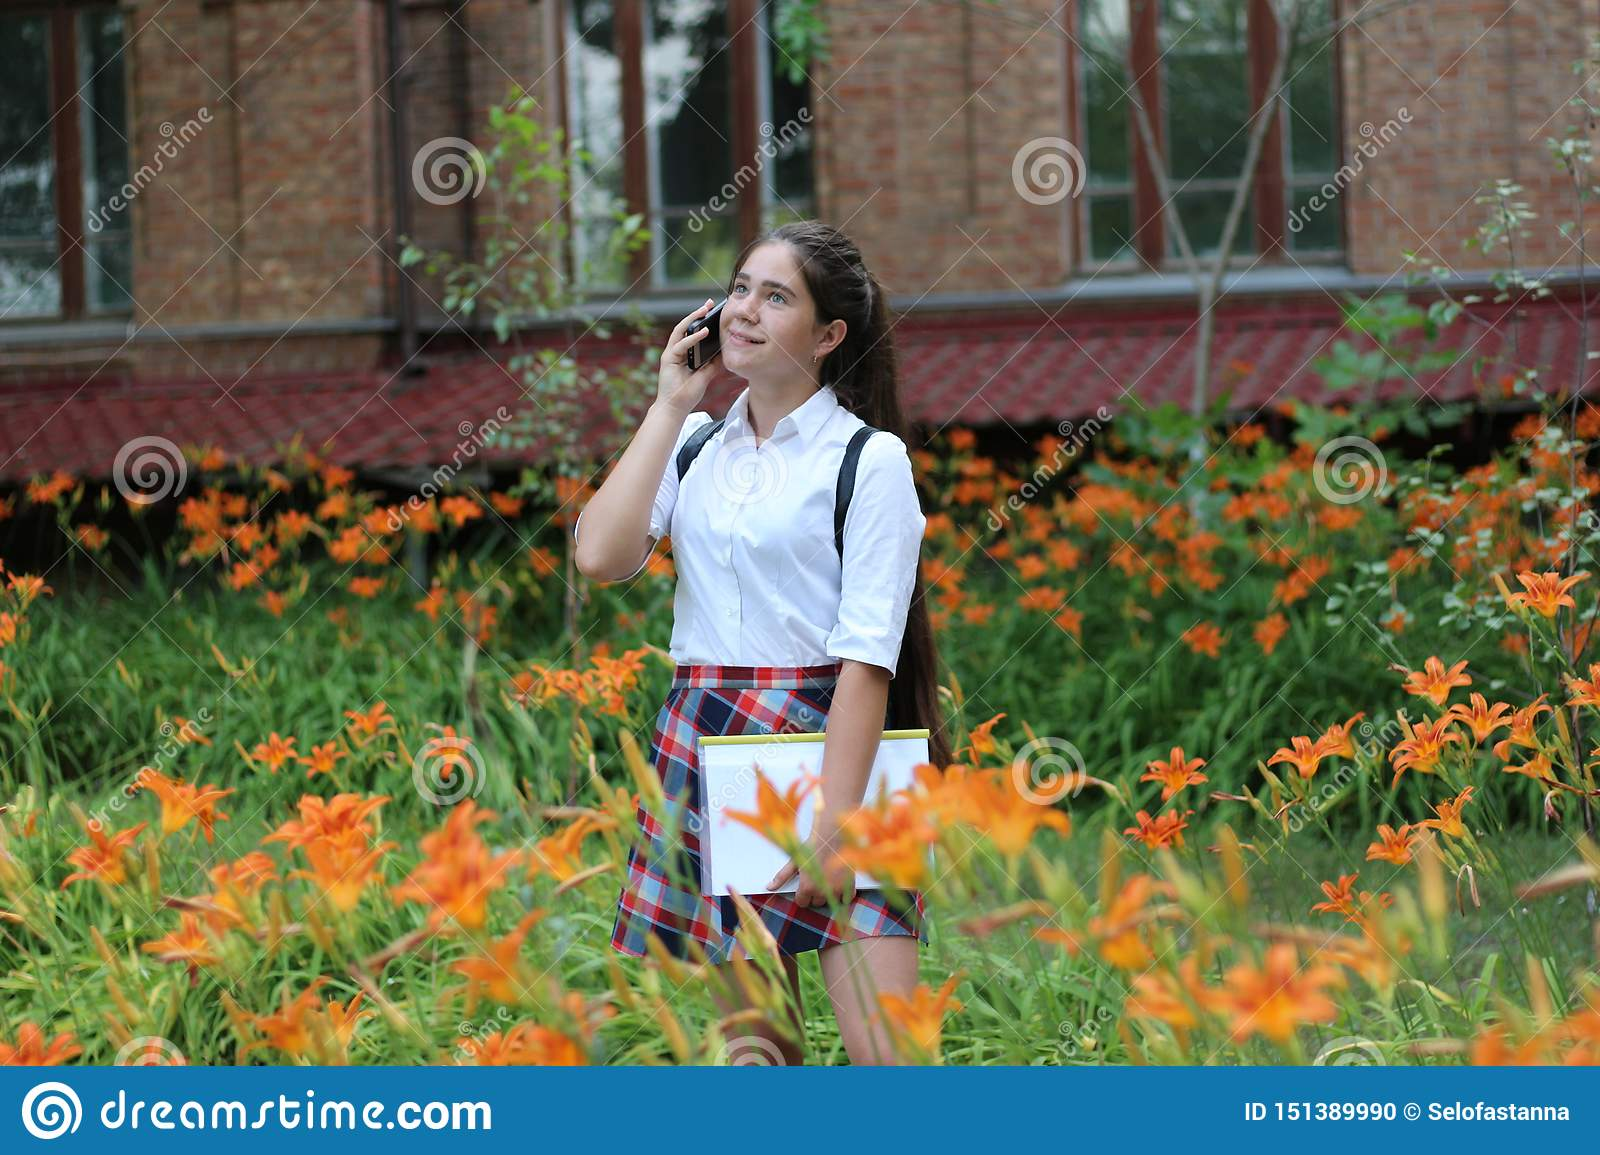 Schoolgirl girl with long hair in school uniform talking on the phone